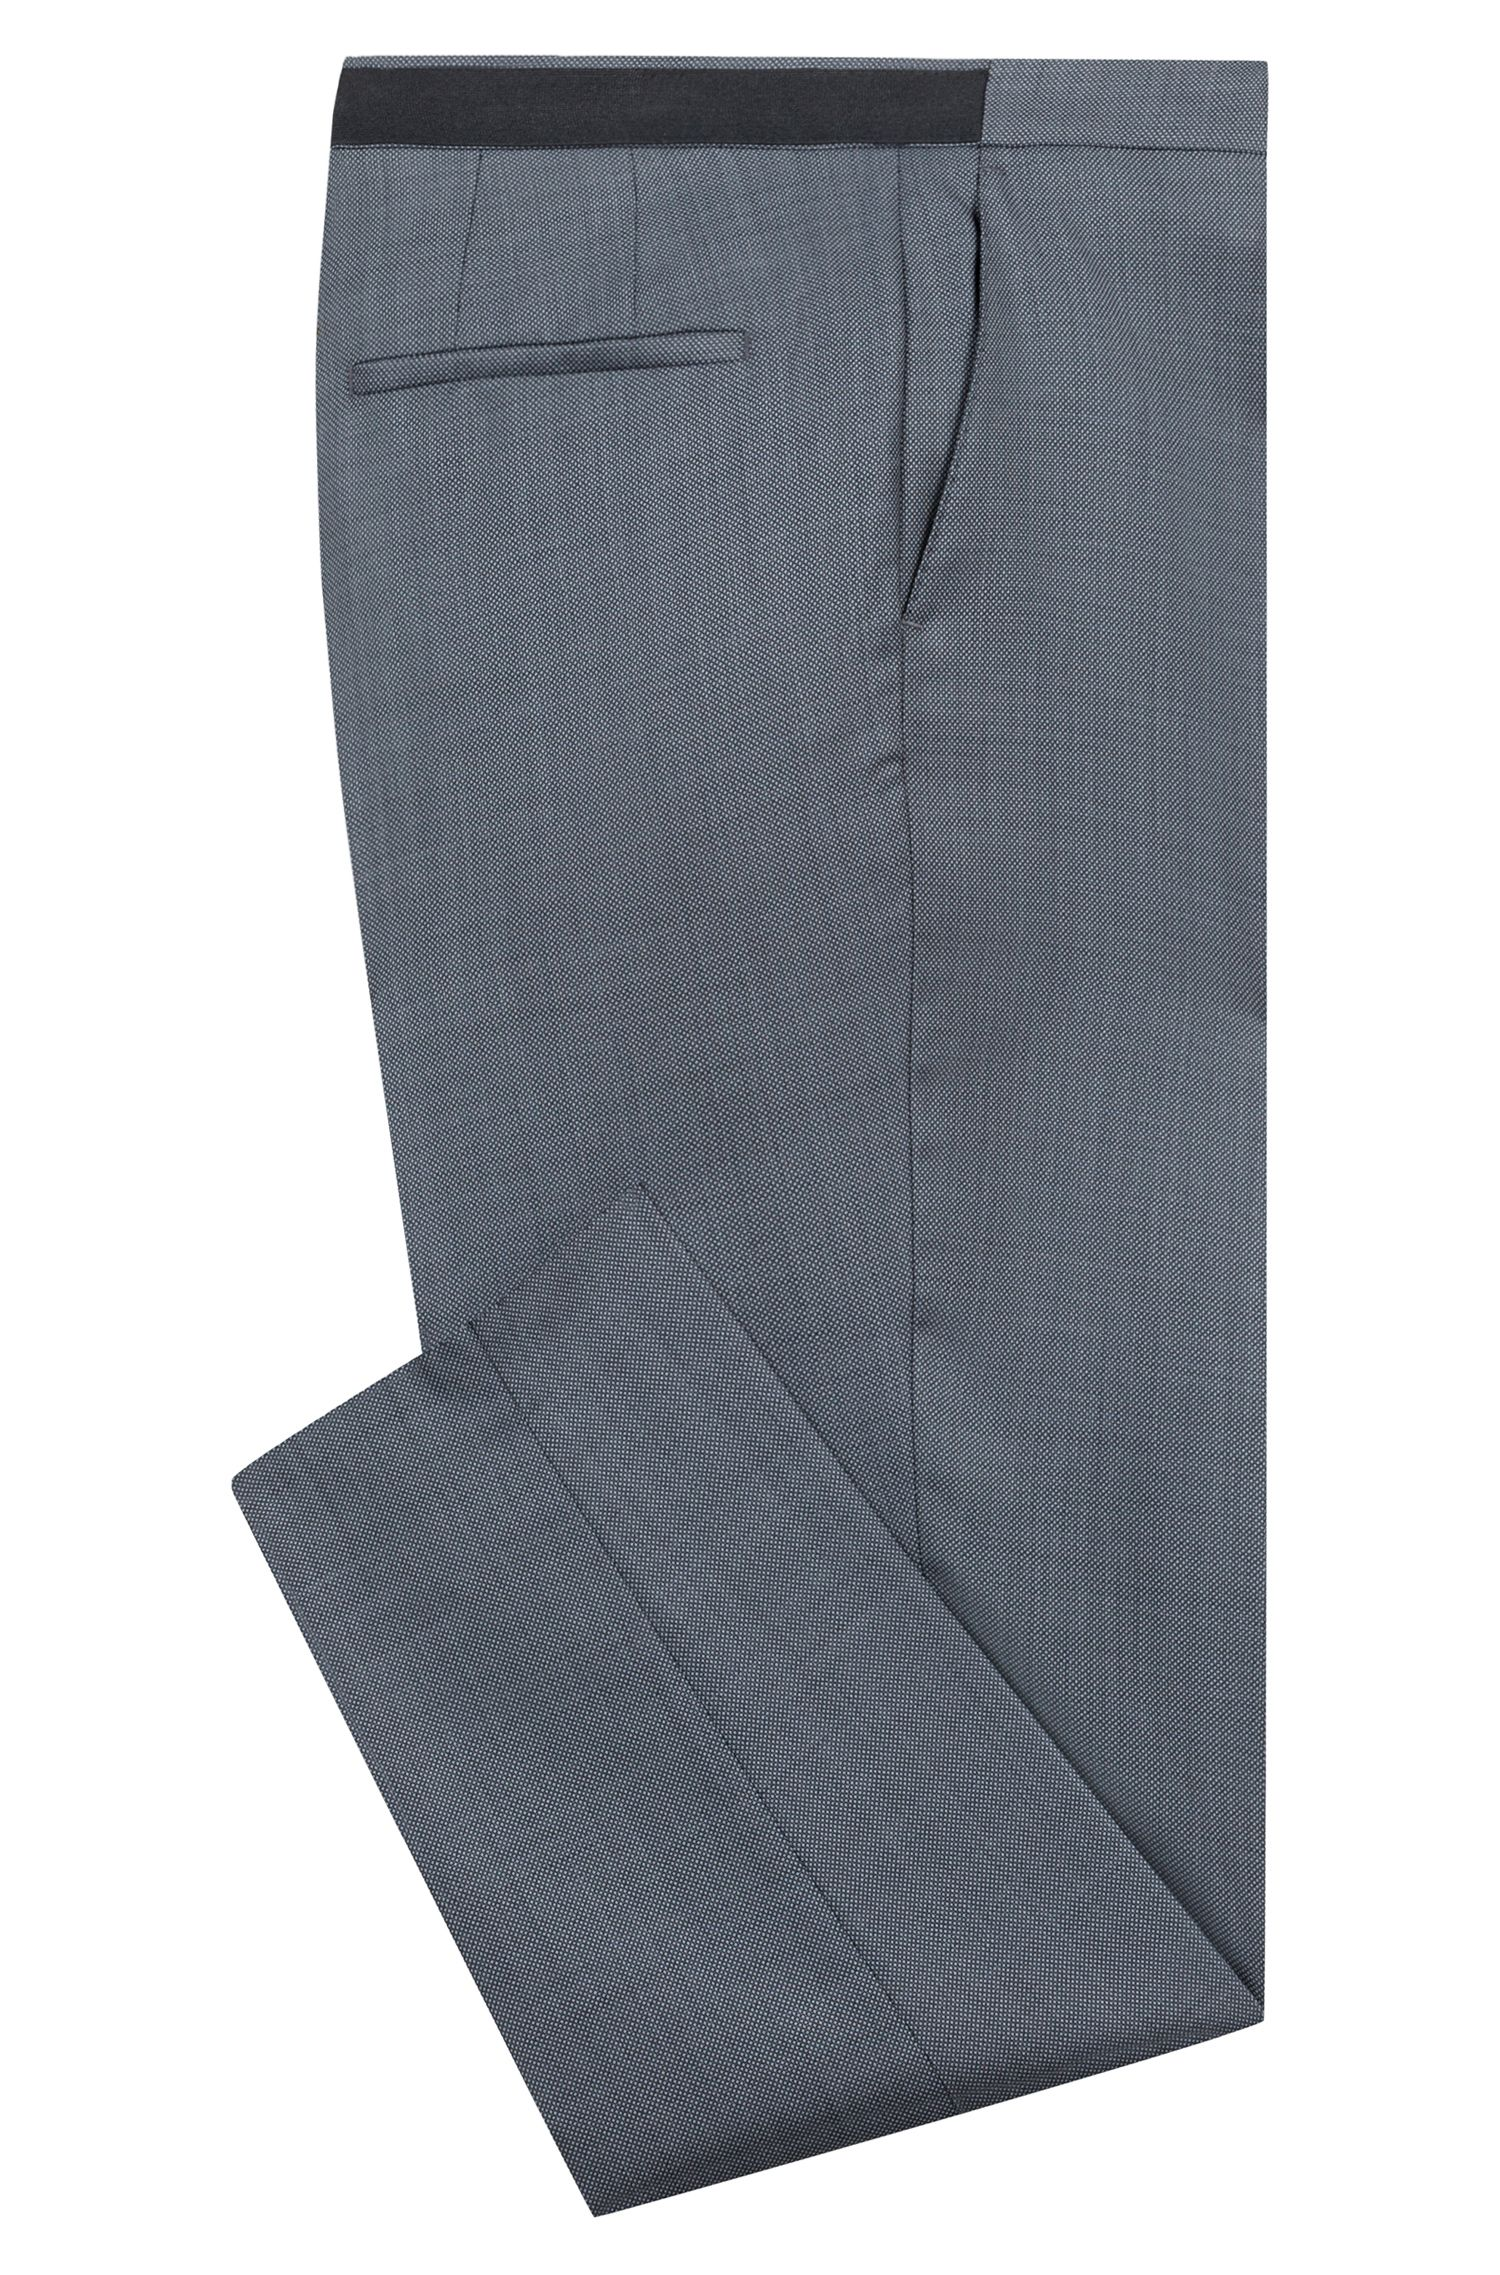 Extra-slim-fit pants in a birdseye wool blend, Charcoal